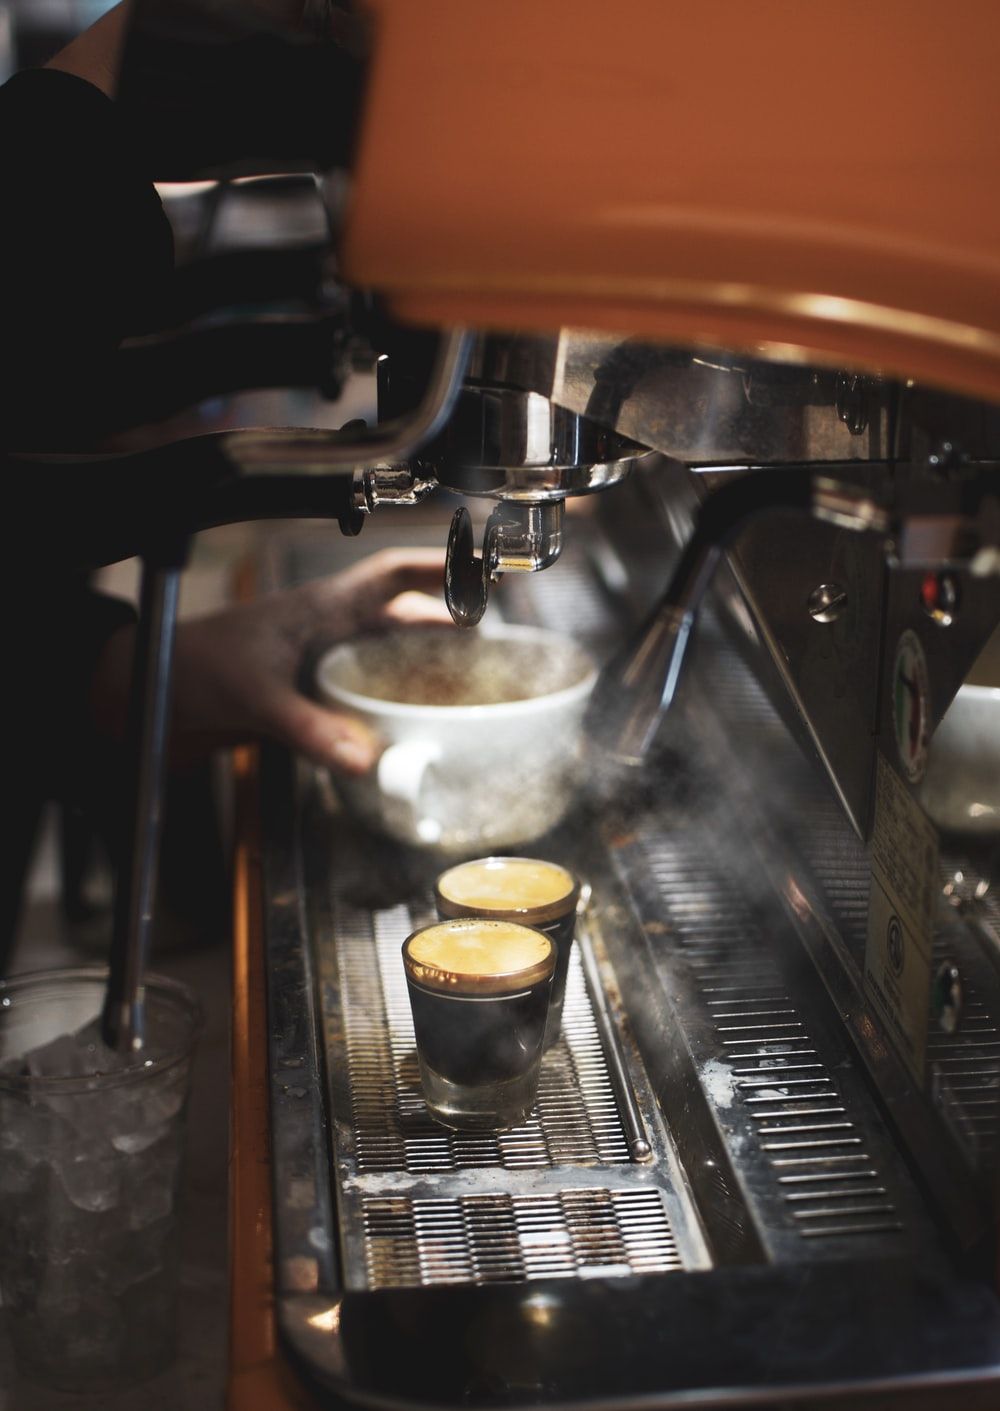 stainless steel cup on silver and brown espresso machine